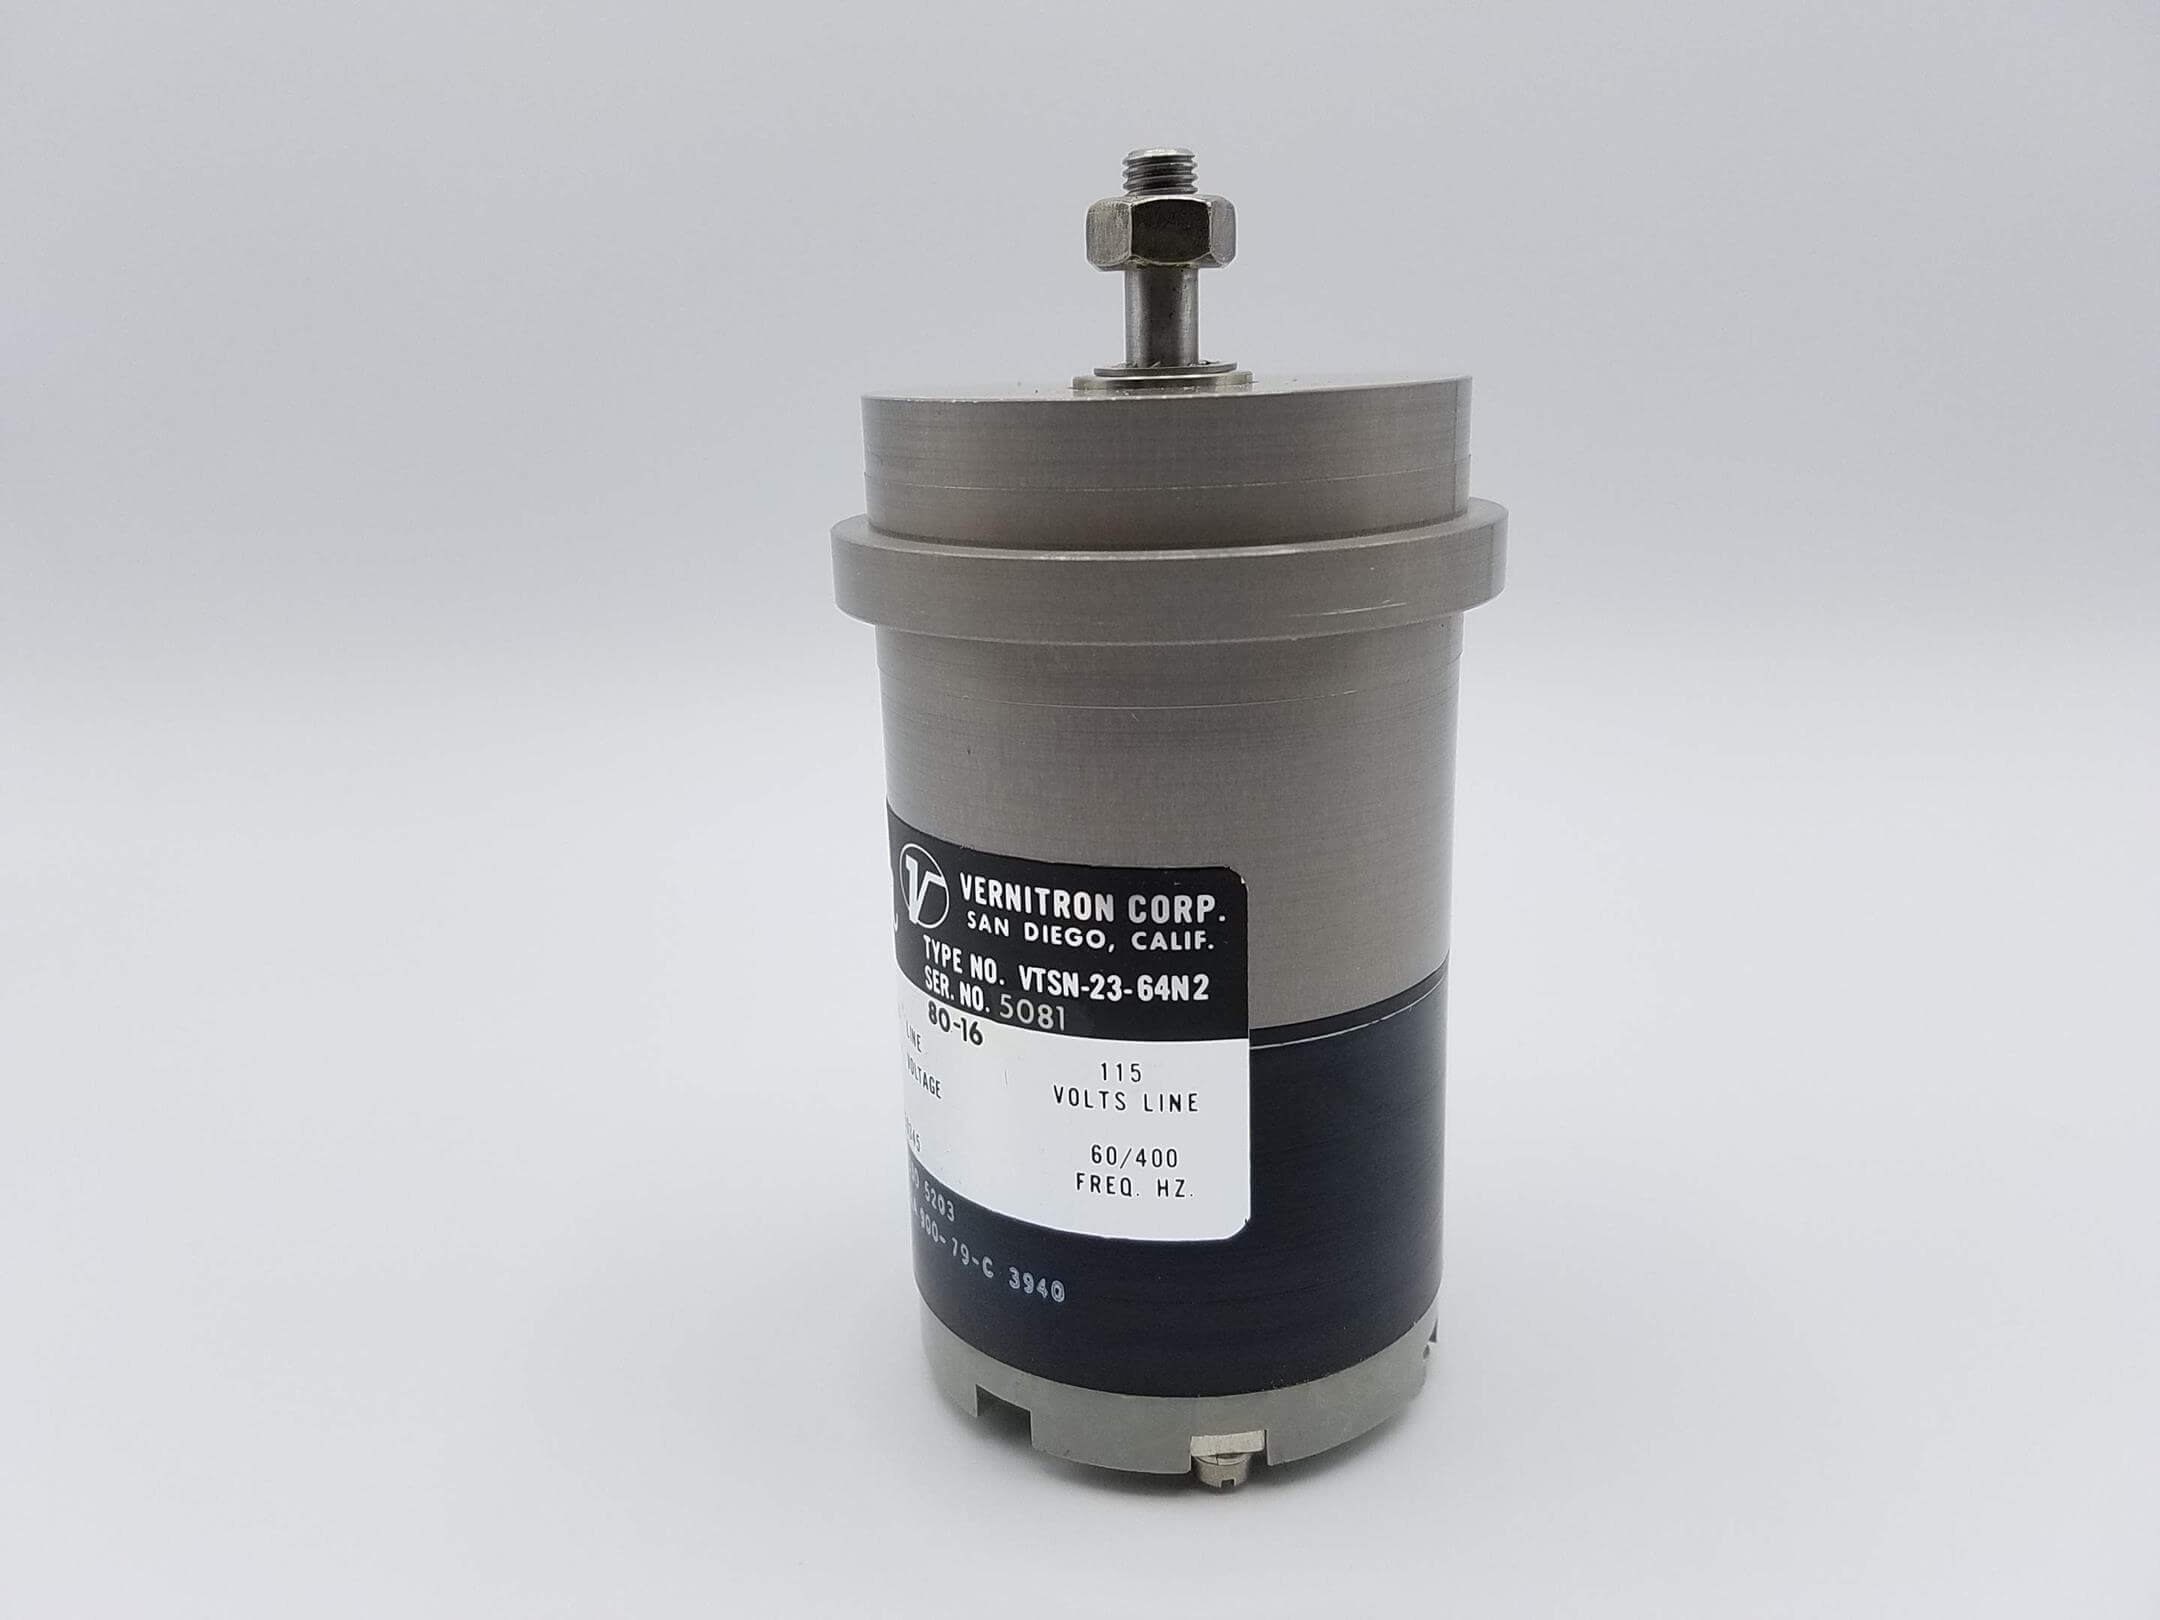 Picture of torque motor part number VTSN23-64N2